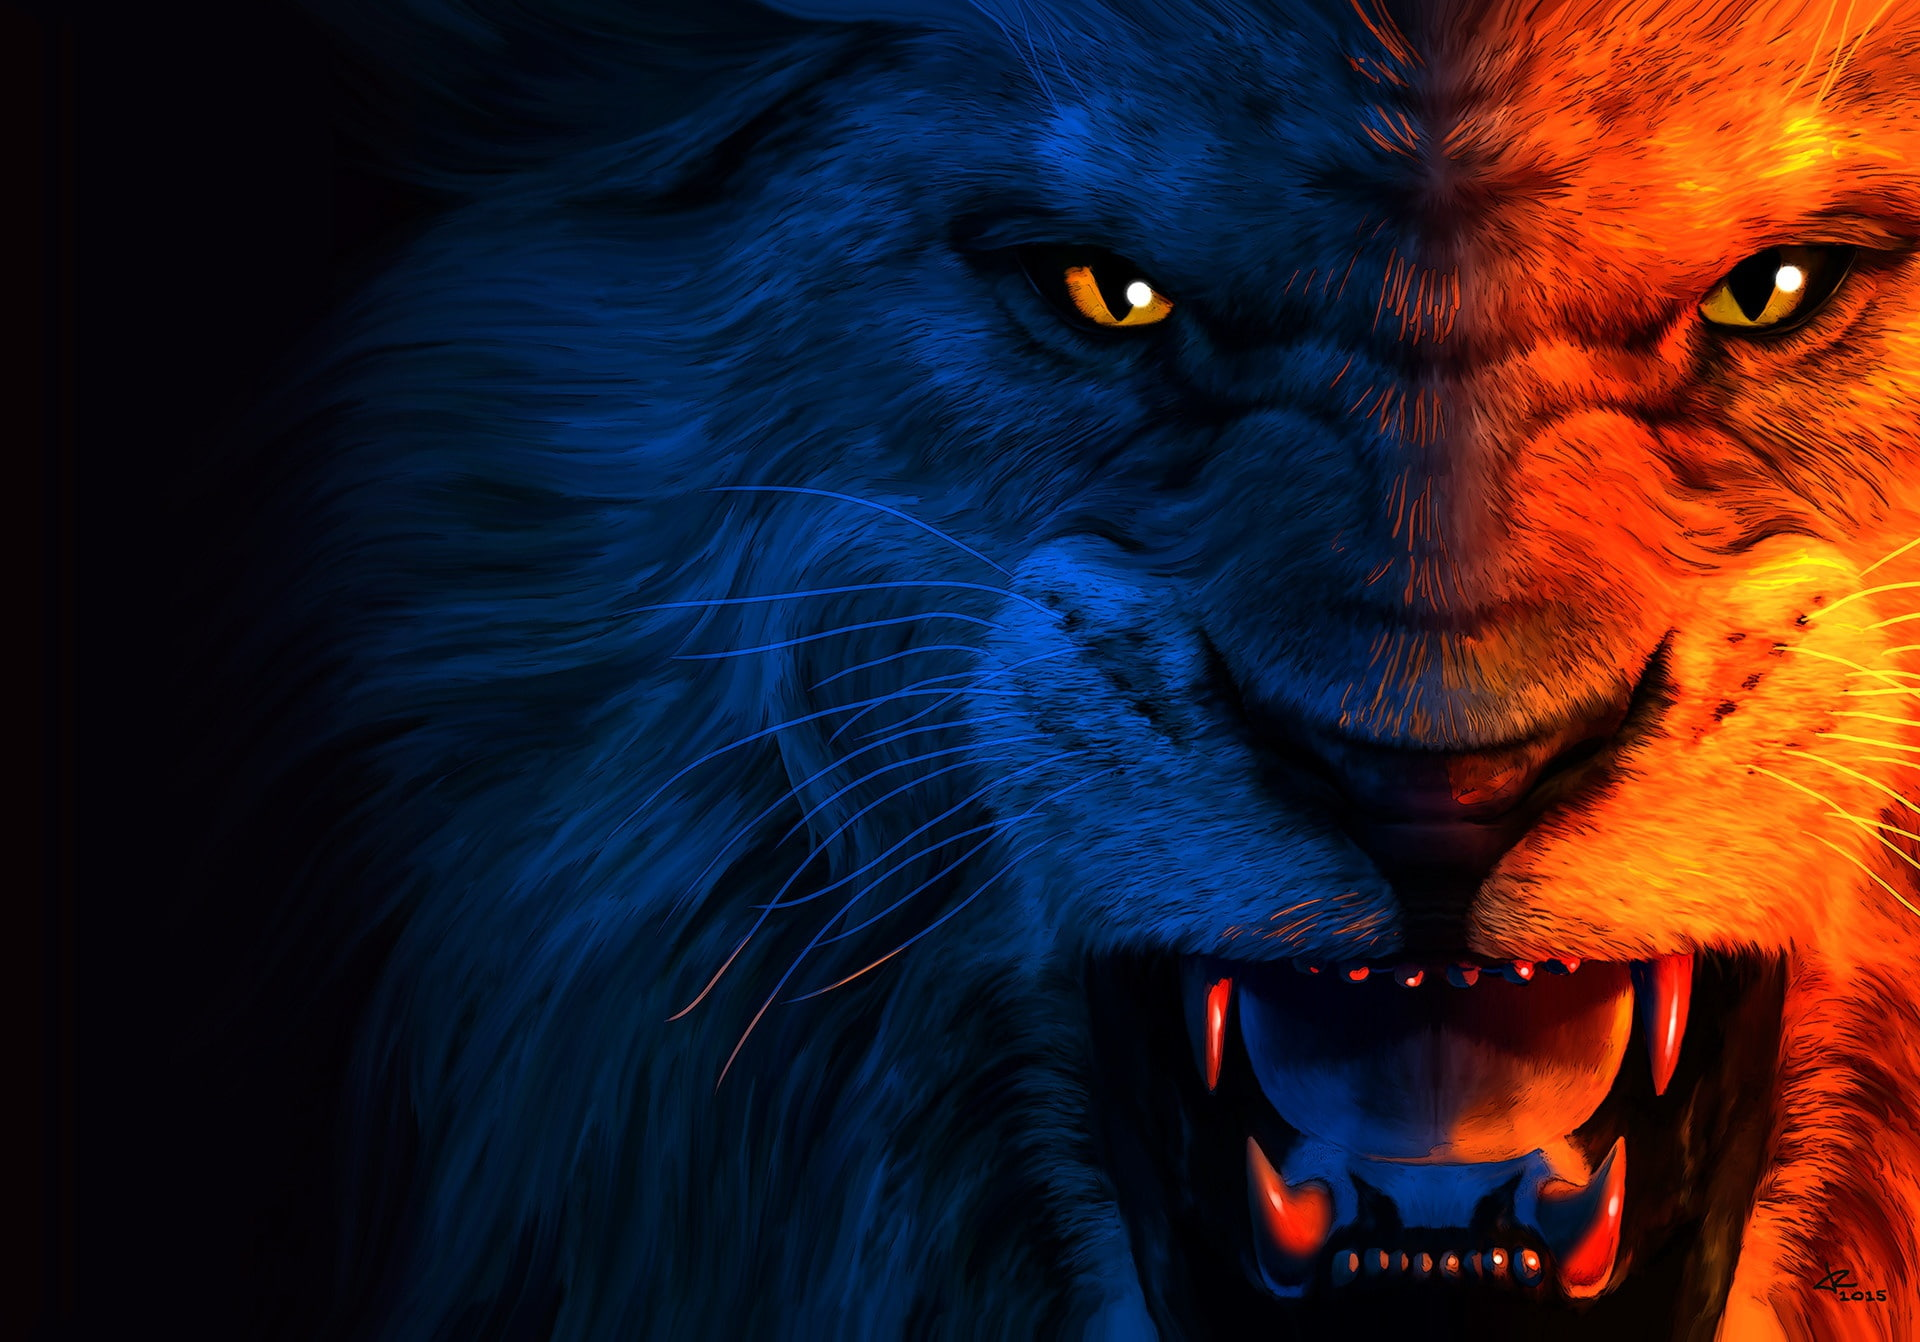 Angry Lion Wallpaper 4k , HD Wallpaper & Backgrounds